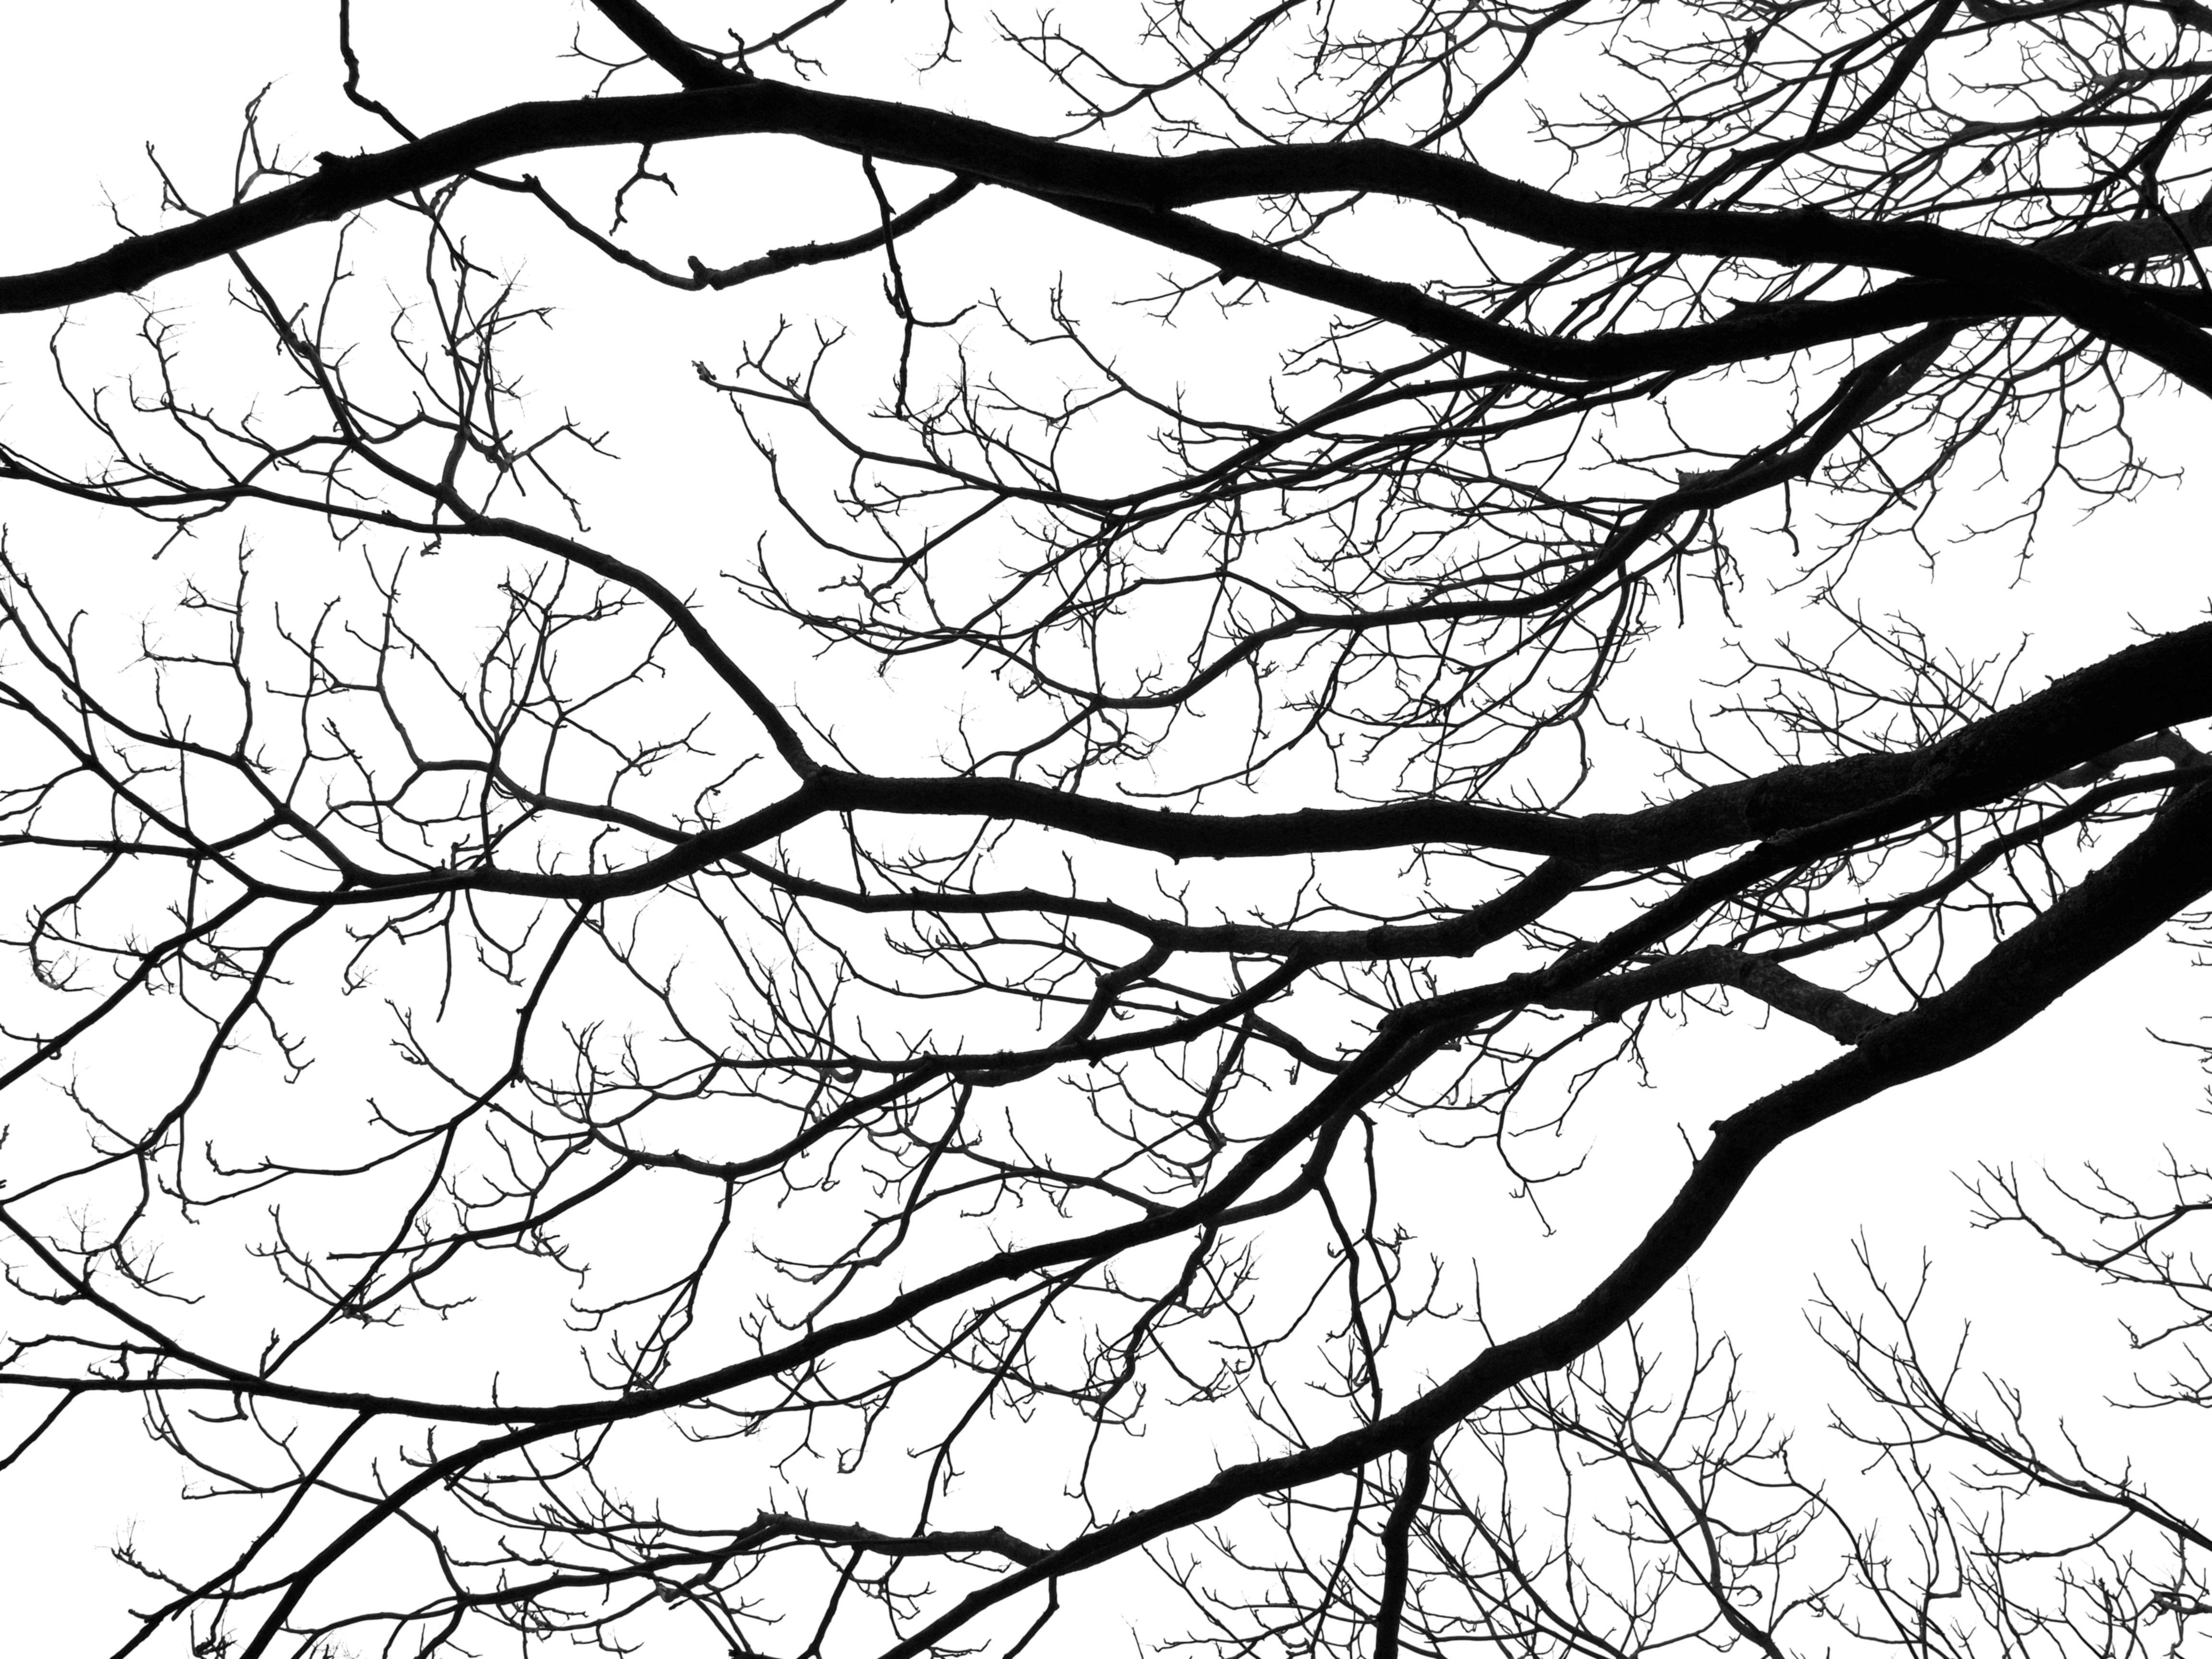 4608x3456 Free Images Tree, Branch, Silhouette, Winter, Abstract, Black